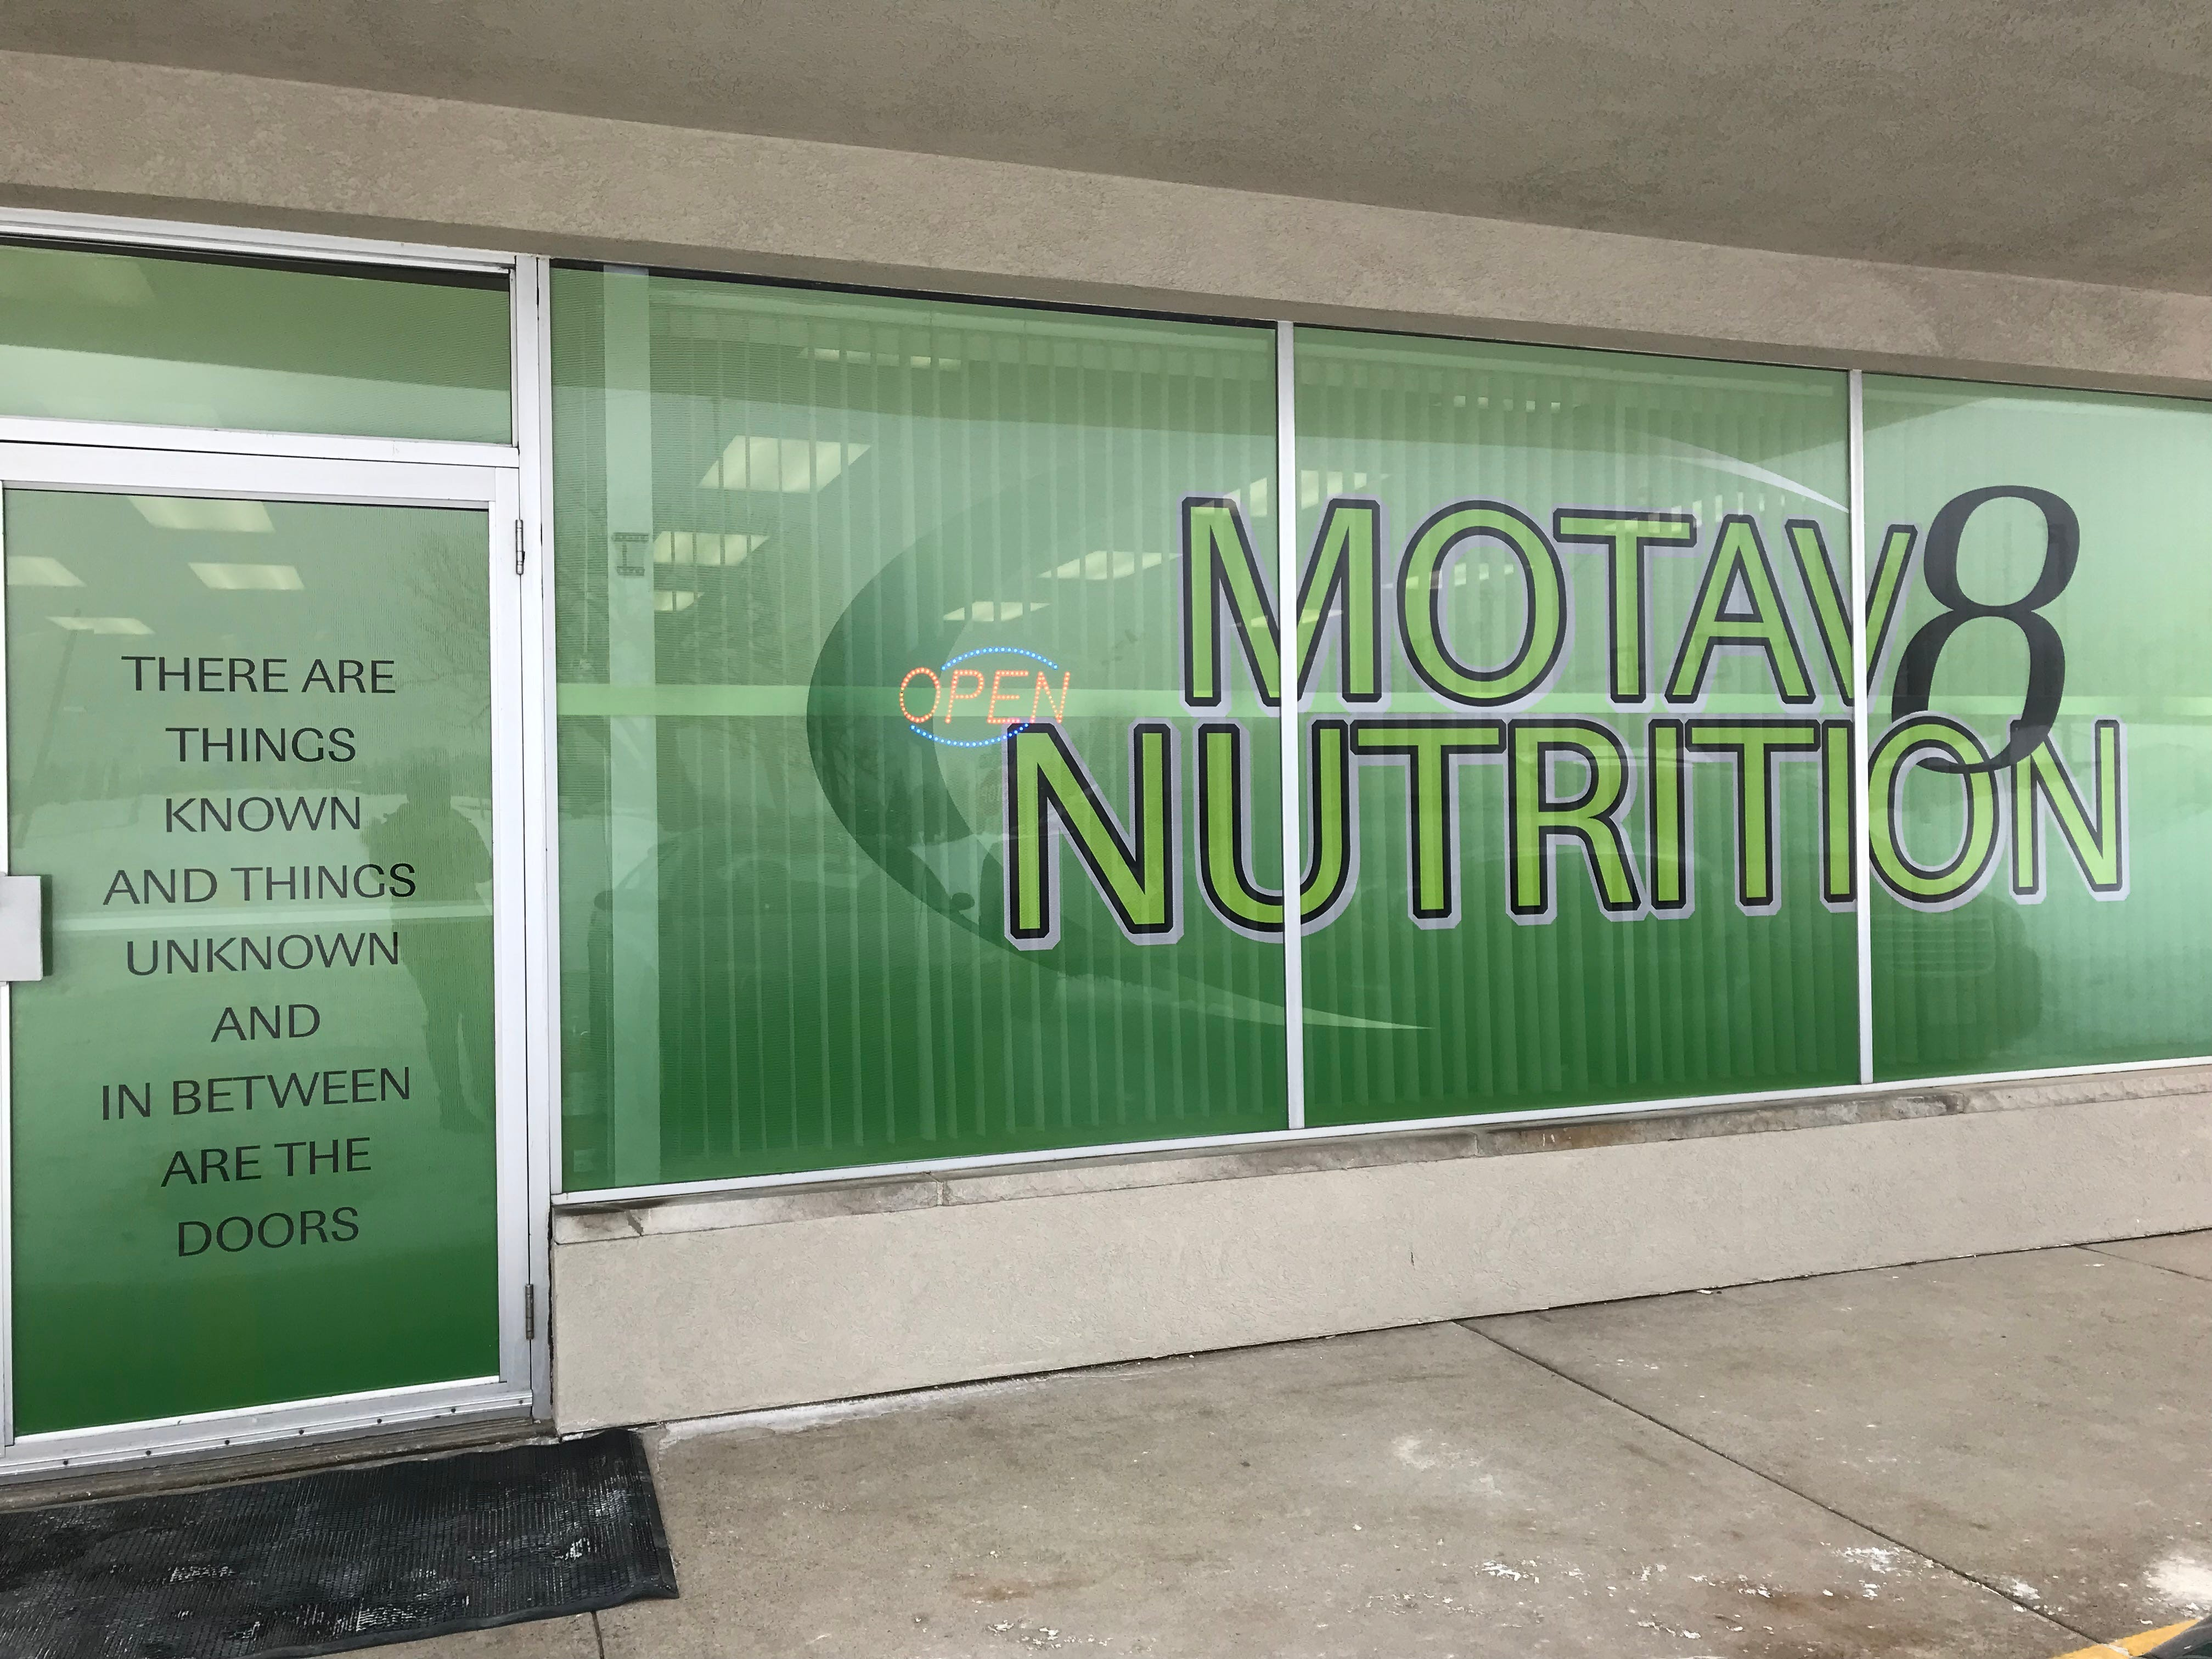 Motav8 Nutrition is a meal replacement nutrition club that offers a menu of protein-based teas, healthy energy drinks, shakes and iced coffee.